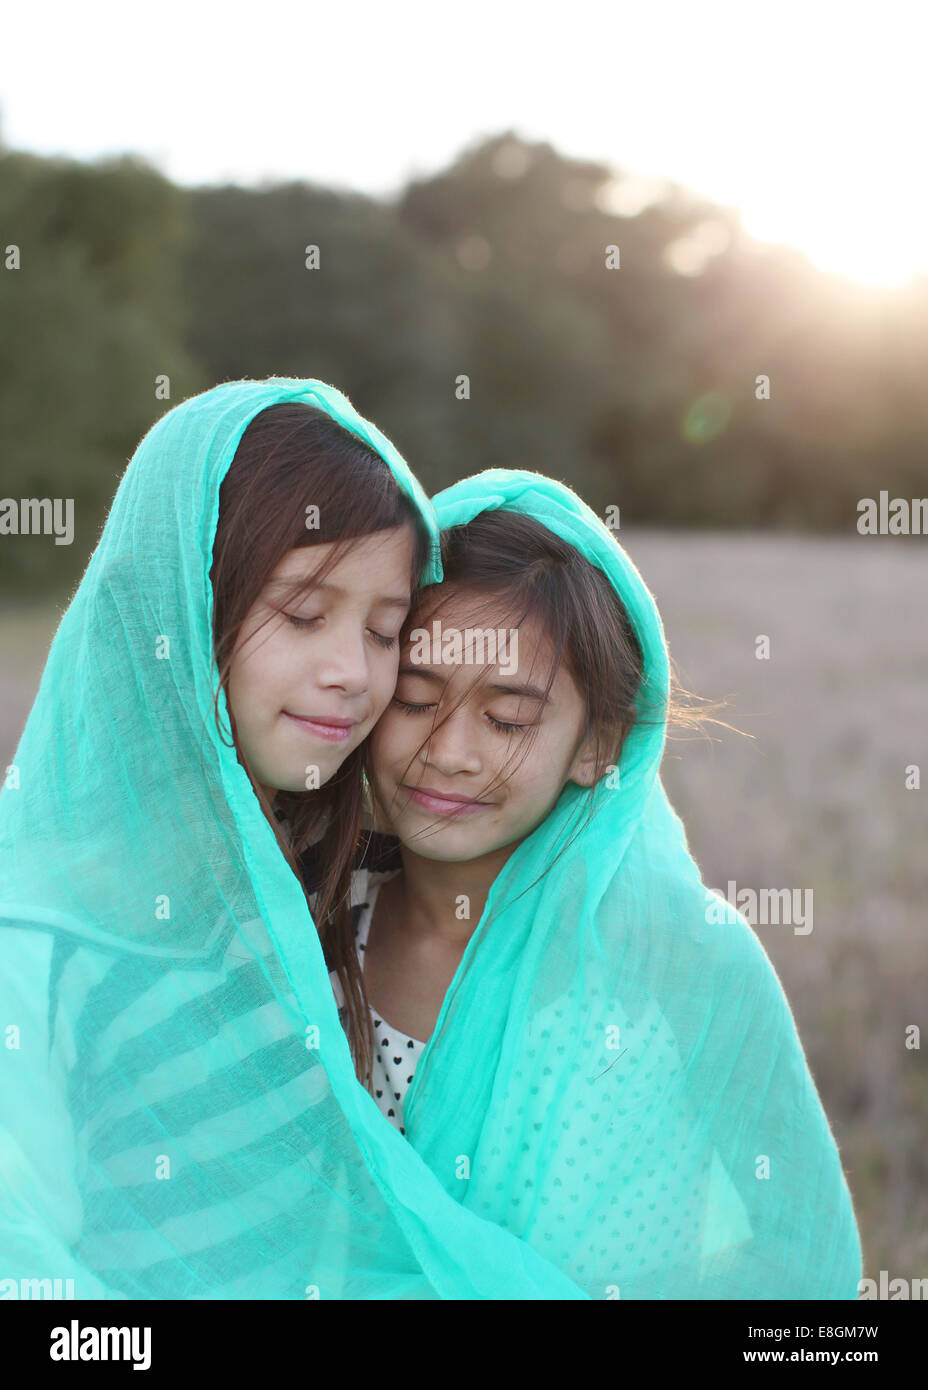 Two girls wrapped in a blanket - Stock Image